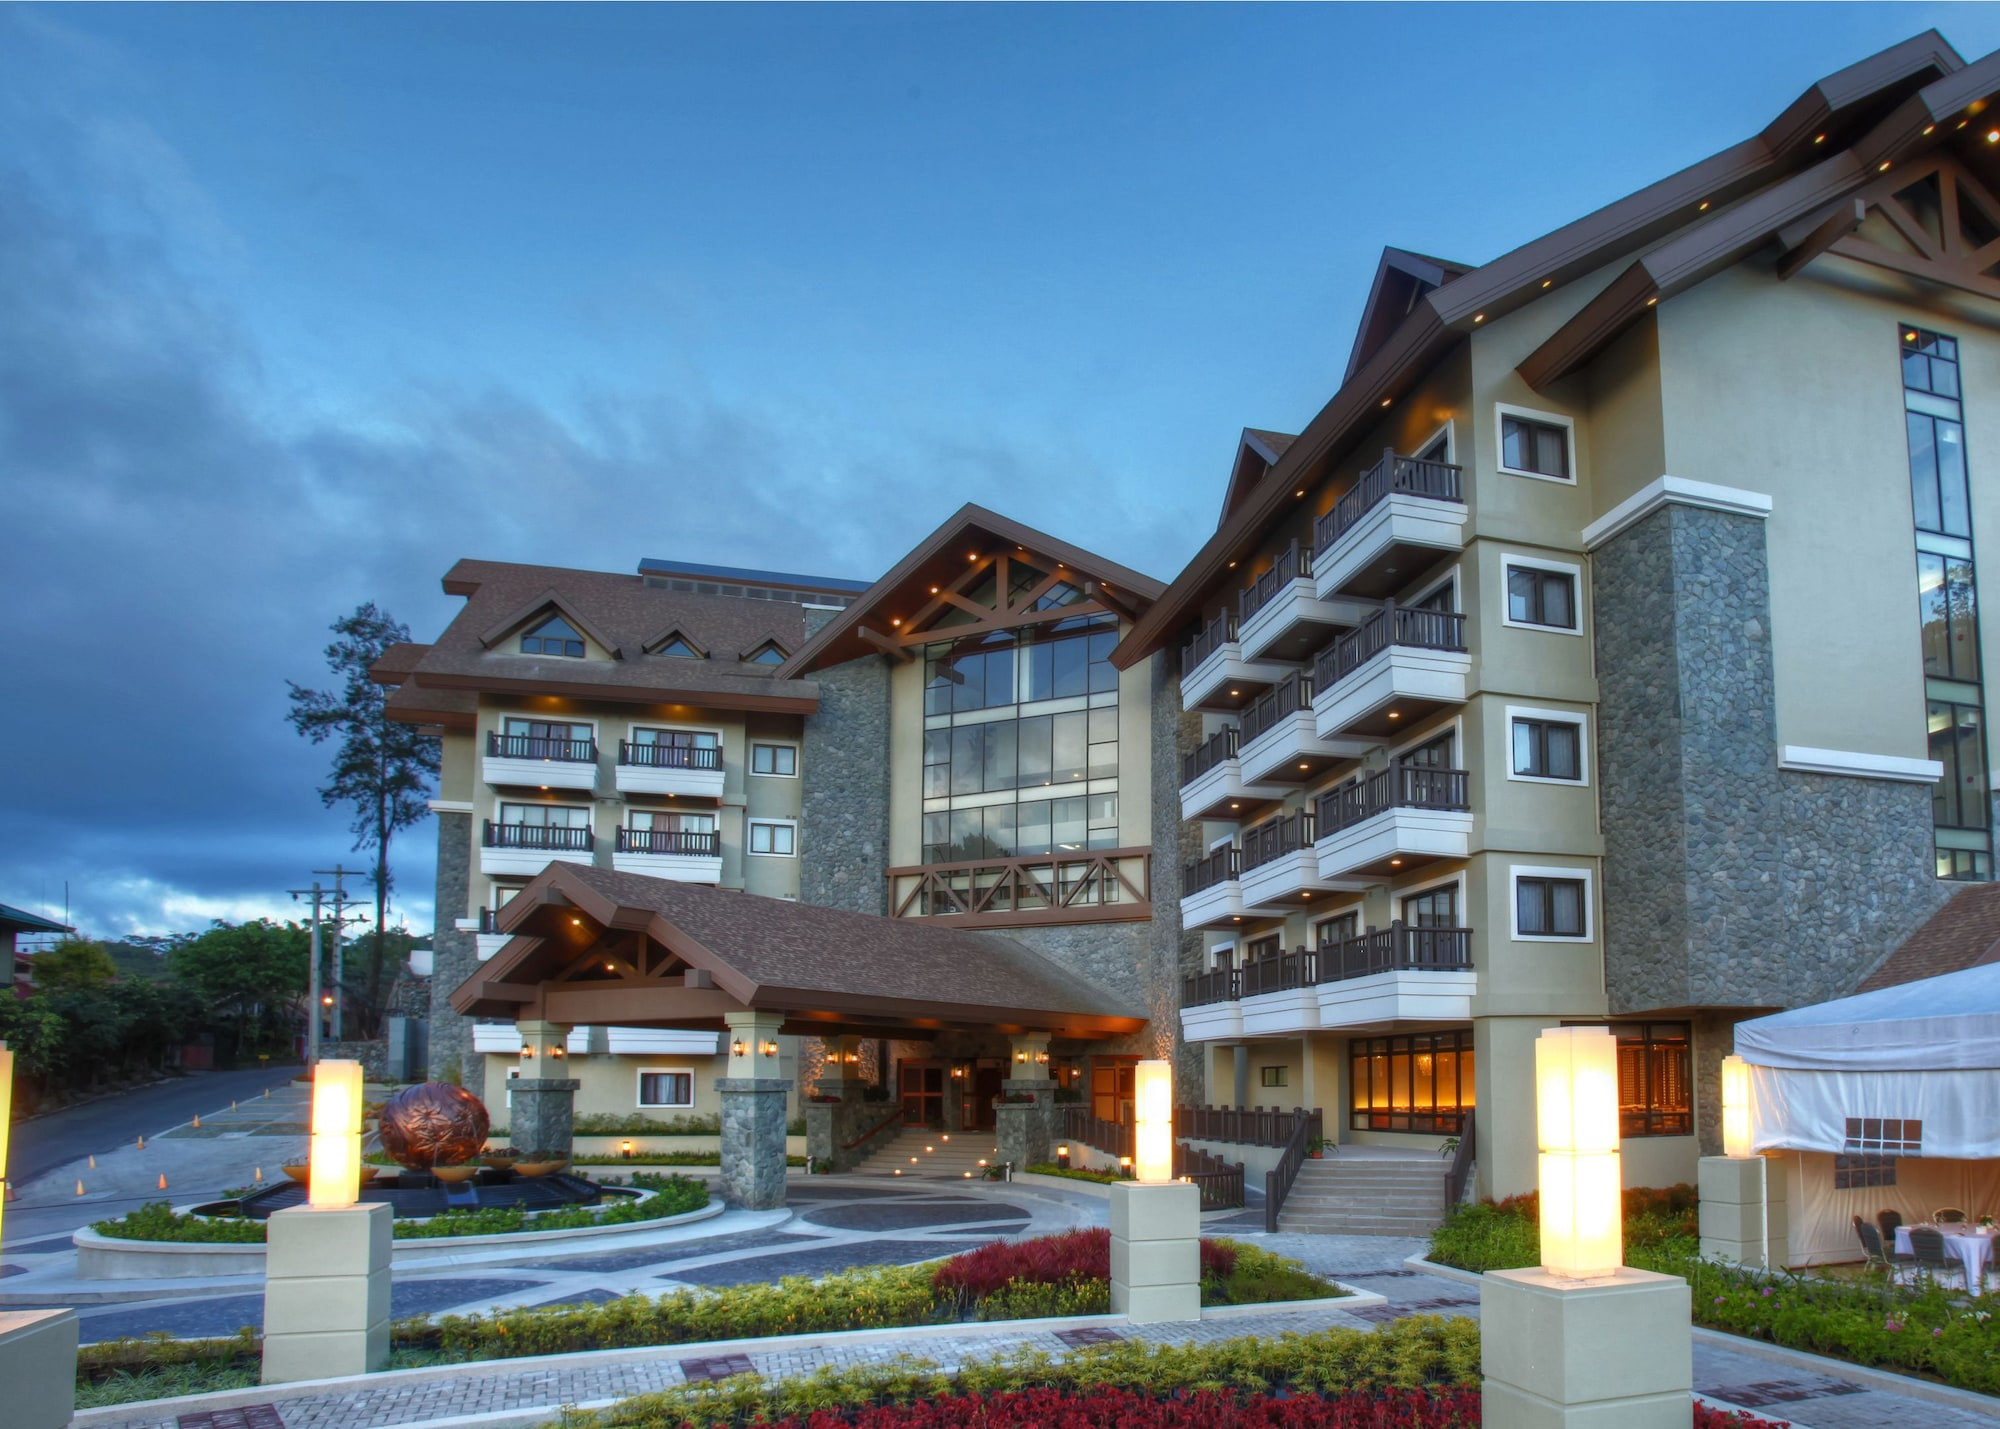 Azalea Hotels & Residences Baguio, Baguio City